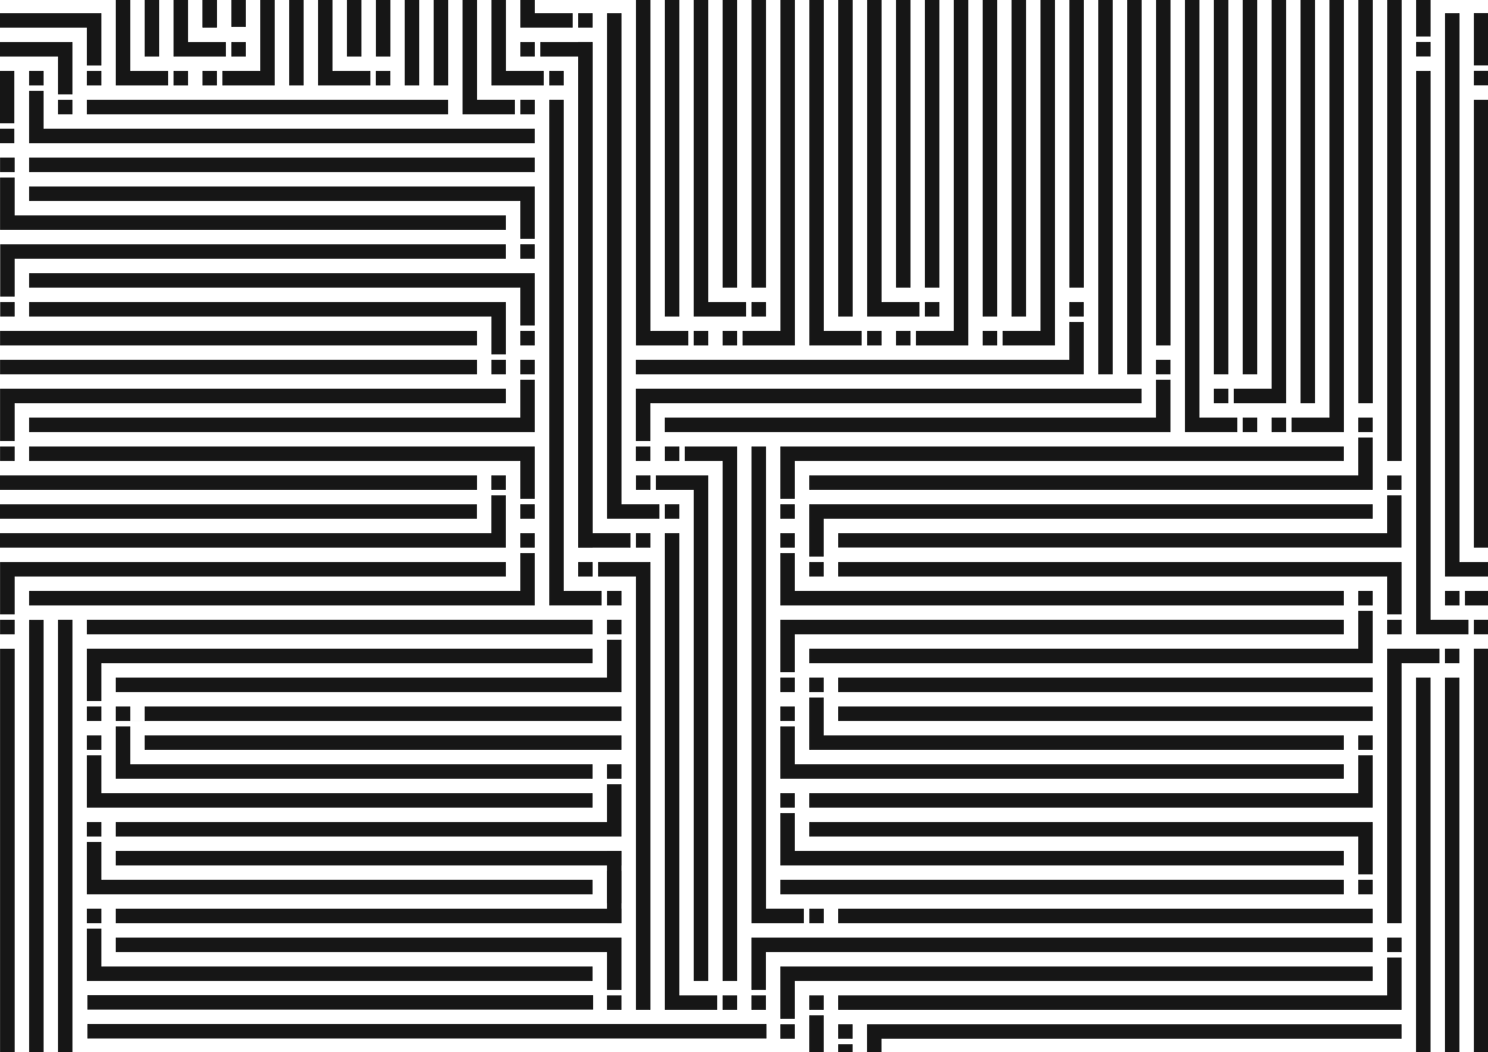 ist_publishing_pattern_only.png